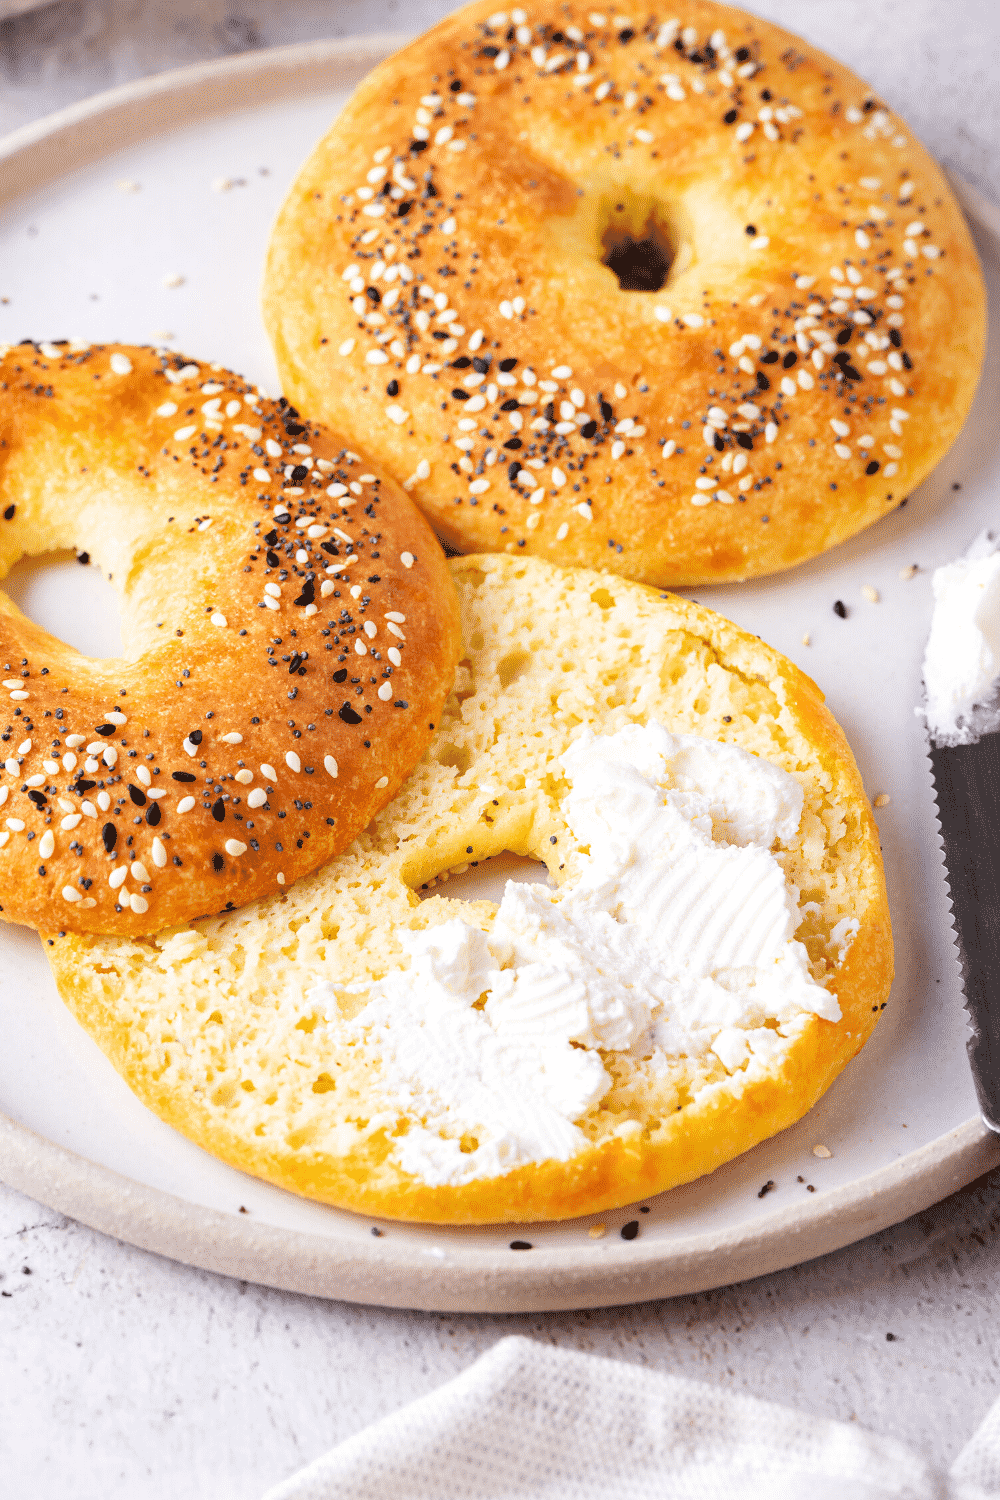 Two bagels on a white plate. A whole bagel is at the back of the plate and a sliced bagel is at the front. The sliced bagel has butter spread on the bottom half of it.